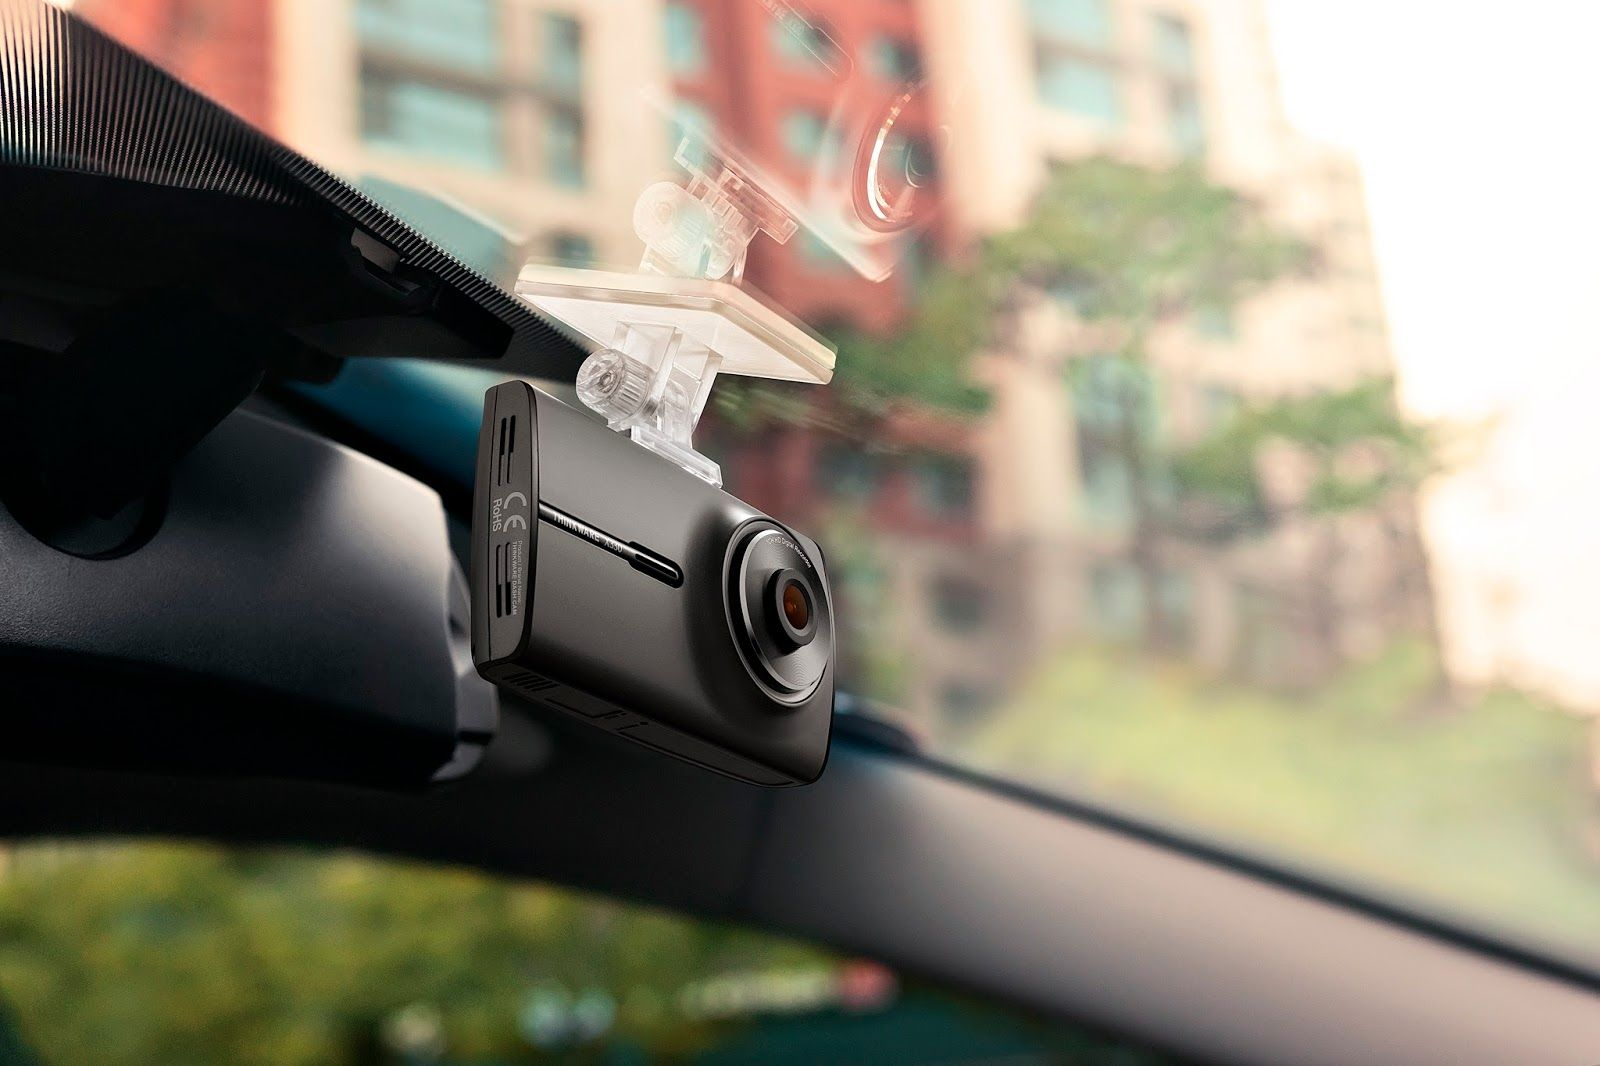 Discover all the uses of a Dash Cam